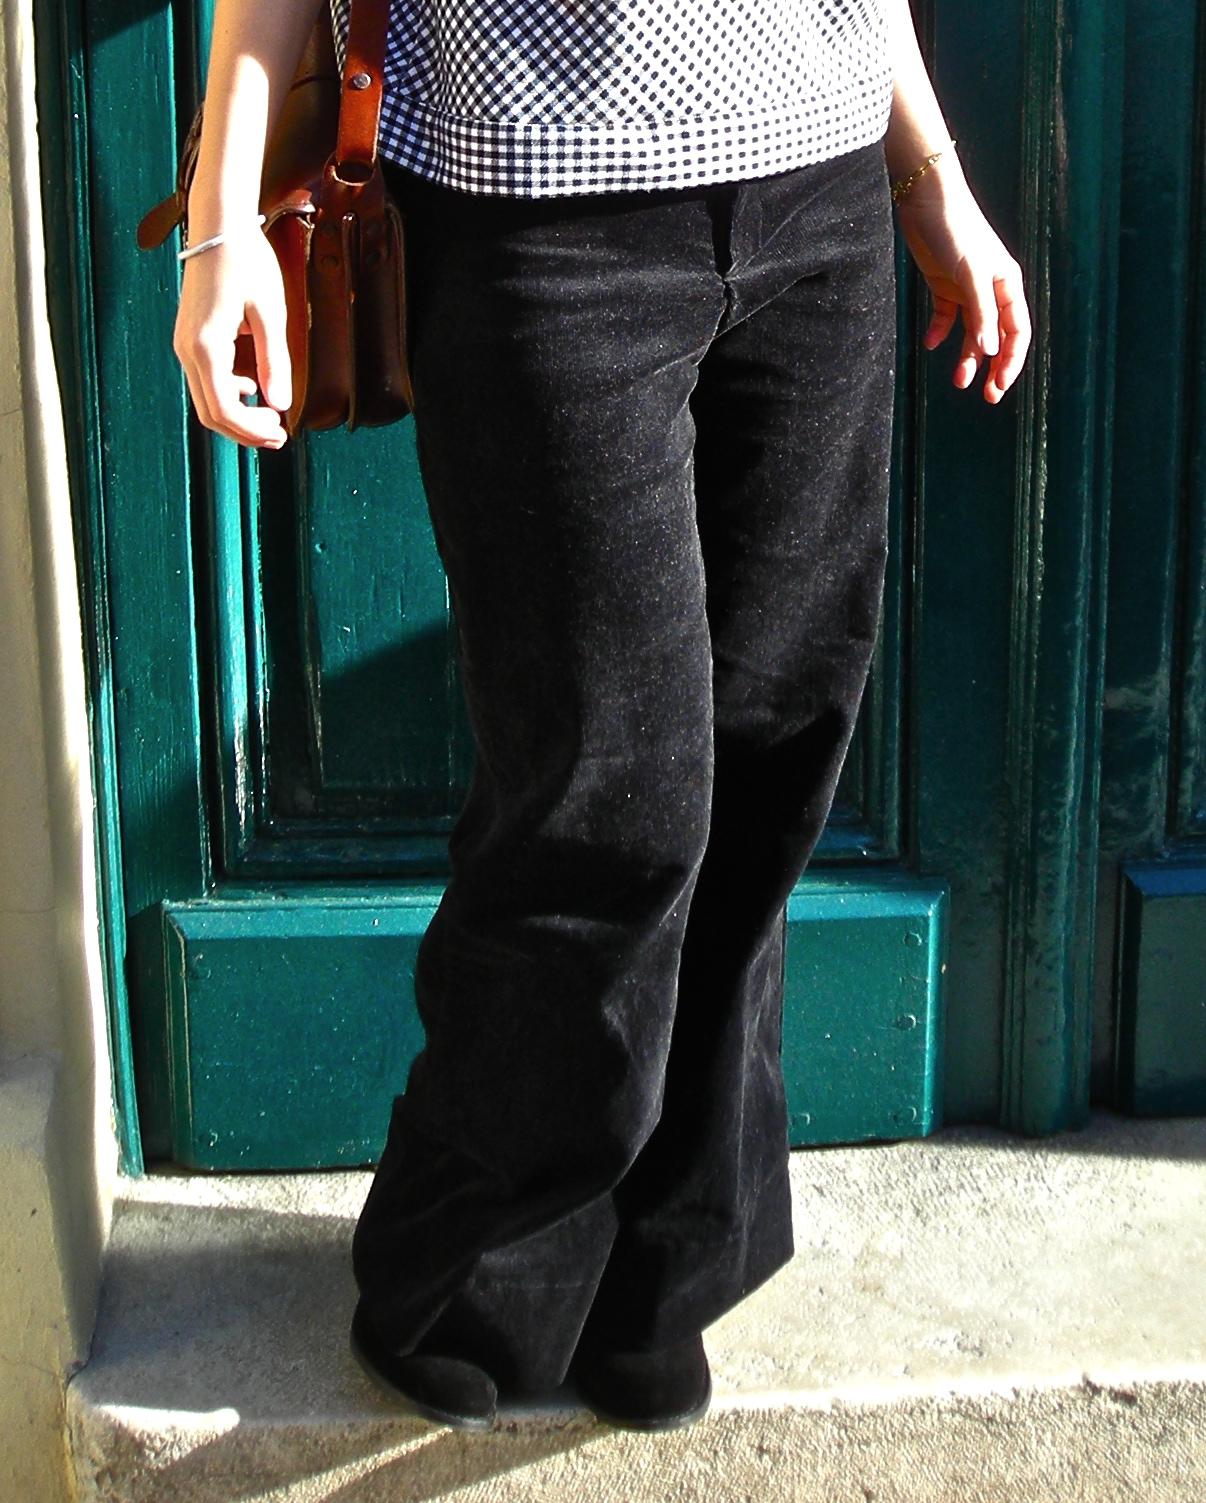 Try our Women's Sport Corduroy Pants at Lands' End. Everything we sell is Guaranteed. Period.® Since